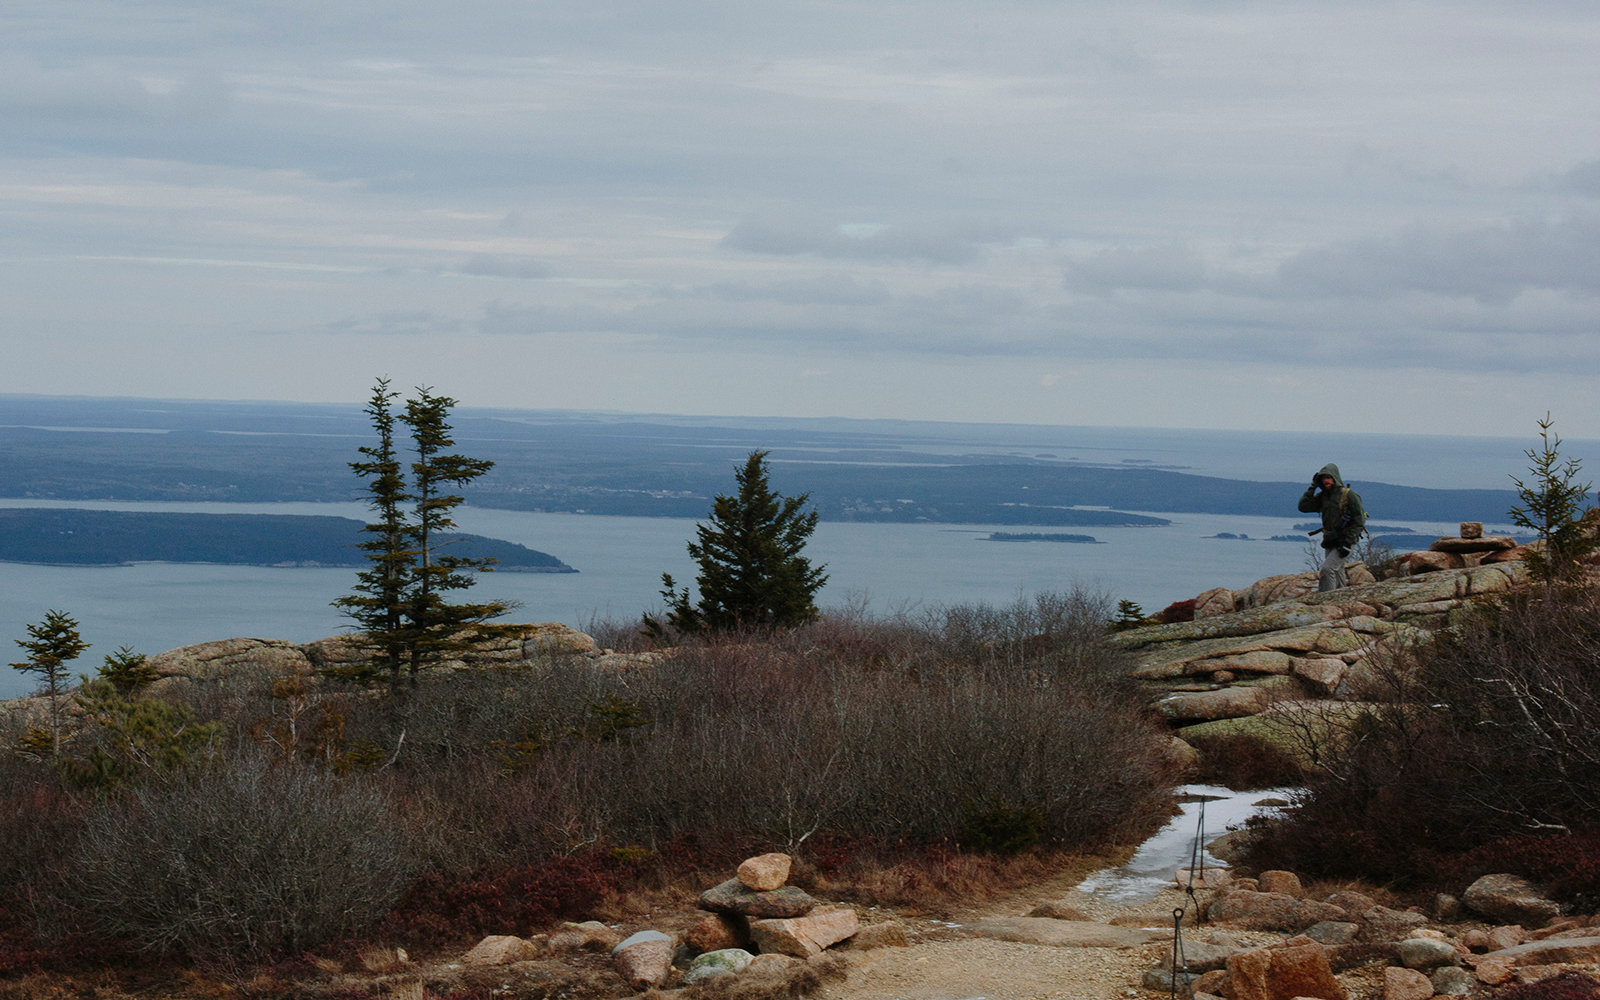 ACADIA NATIONAL PARK, ME - NOVEMBER 22: Andrew Coleman nears the summit of Cadillac Mountain in Acadia National Park on Saturday, November 22, 2014 (Photo by Whitney Hayward/Portland Press Herald via Getty Images)